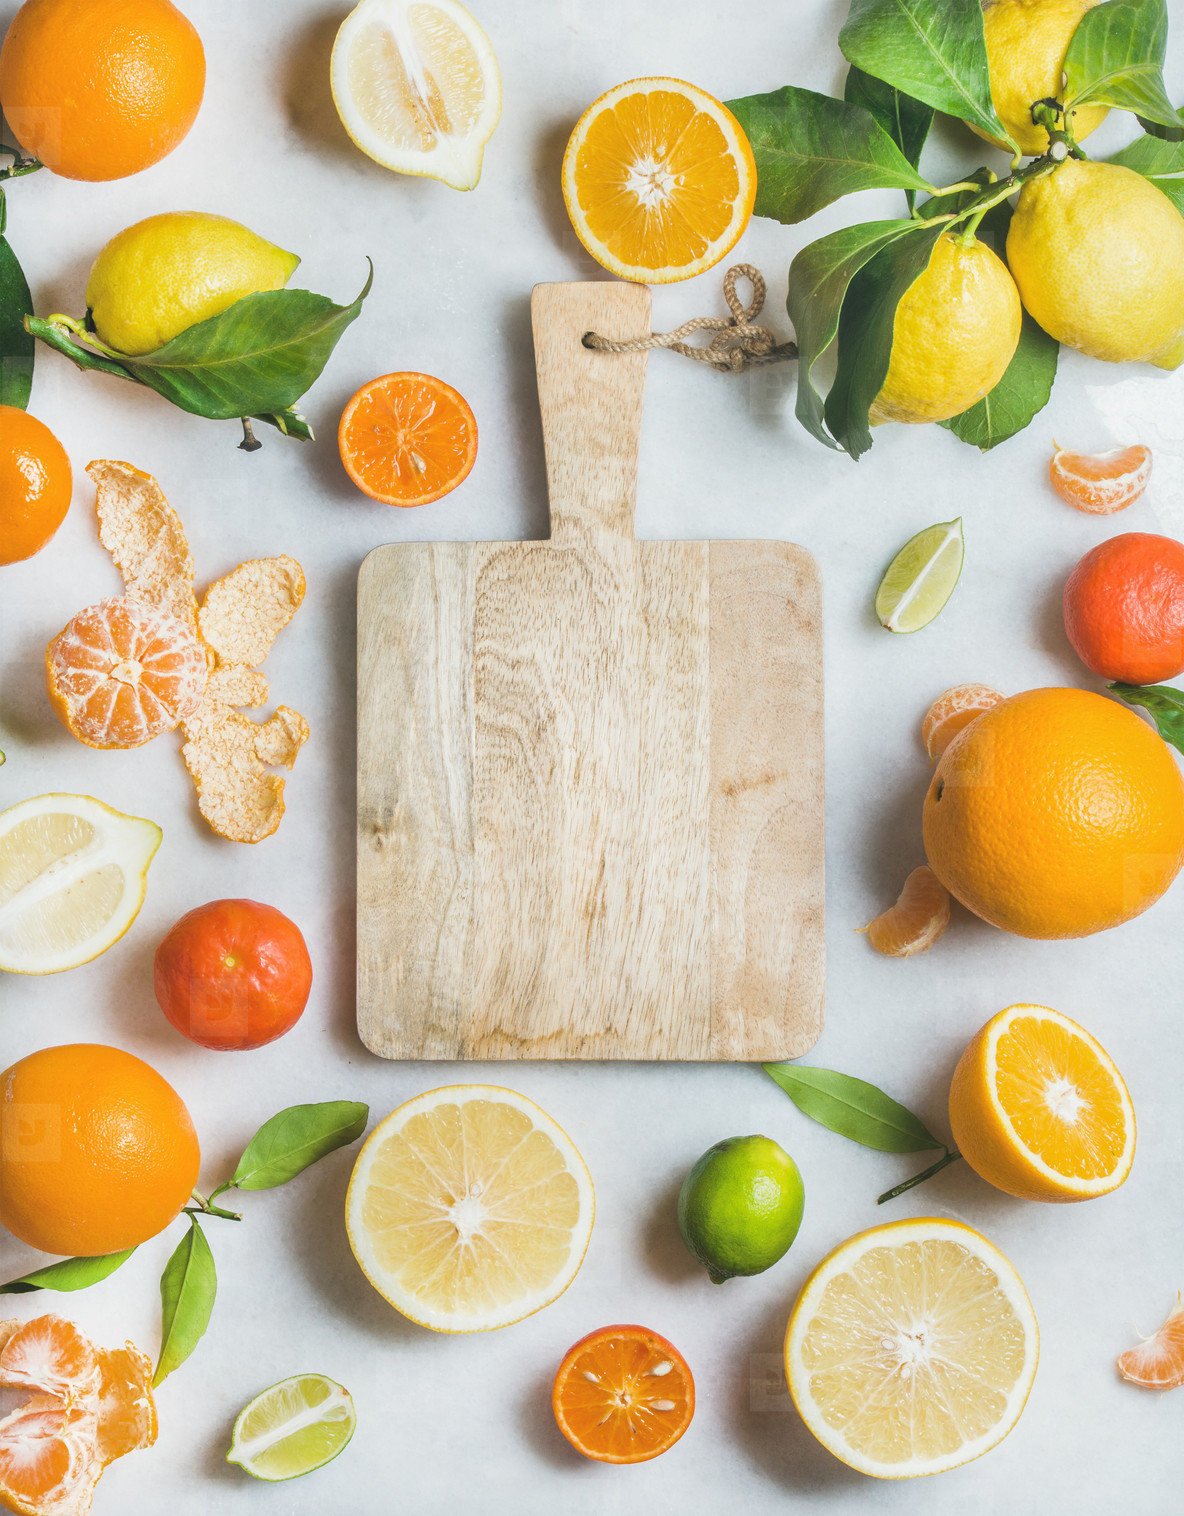 Variety of fresh citrus fruit and wooden board in center